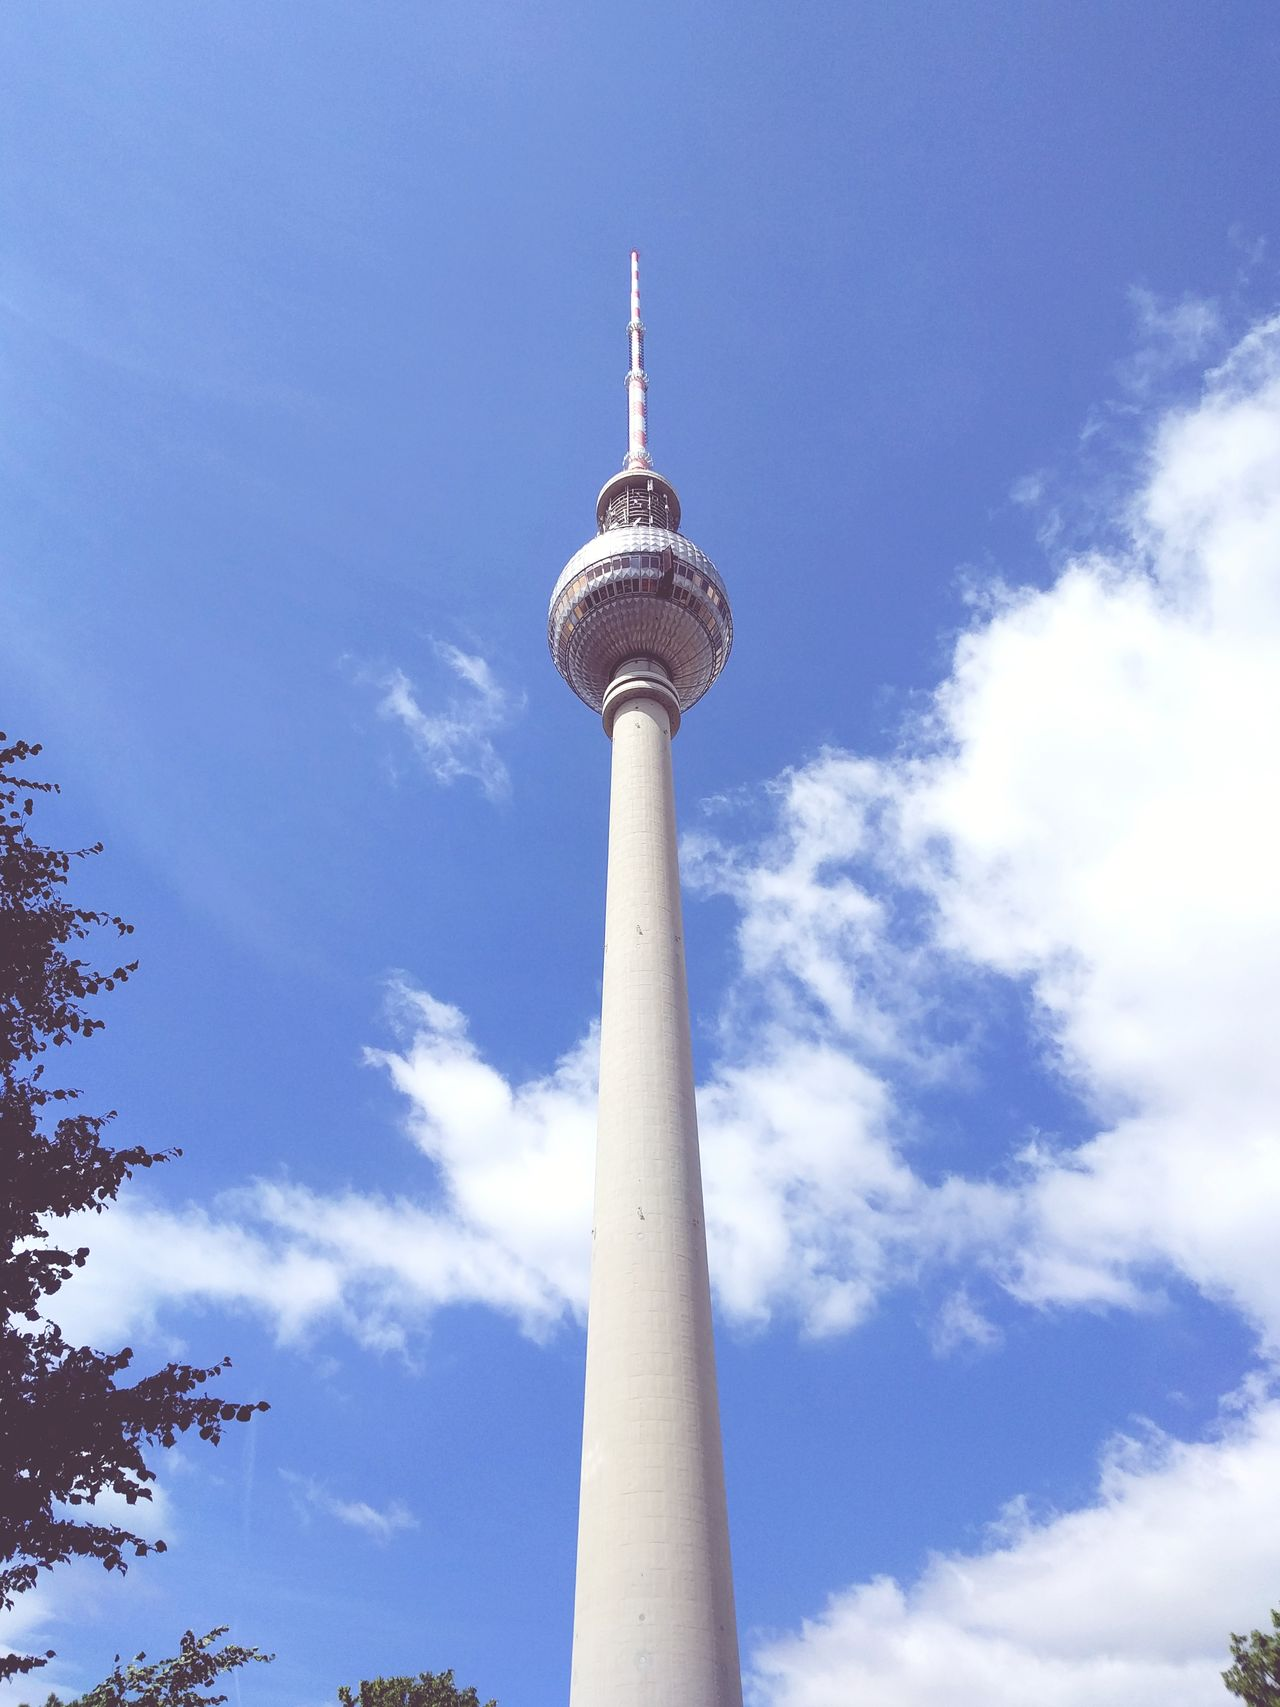 Tall - High Travel Architecture Travel Destinations Low Angle View Communication Tourism Sky City Broadcasting Built Structure Arrival Day No People Blue Outdoors Modern Fernsehturm Fernsehturm / Tv Tower Fernsehturm Berlin